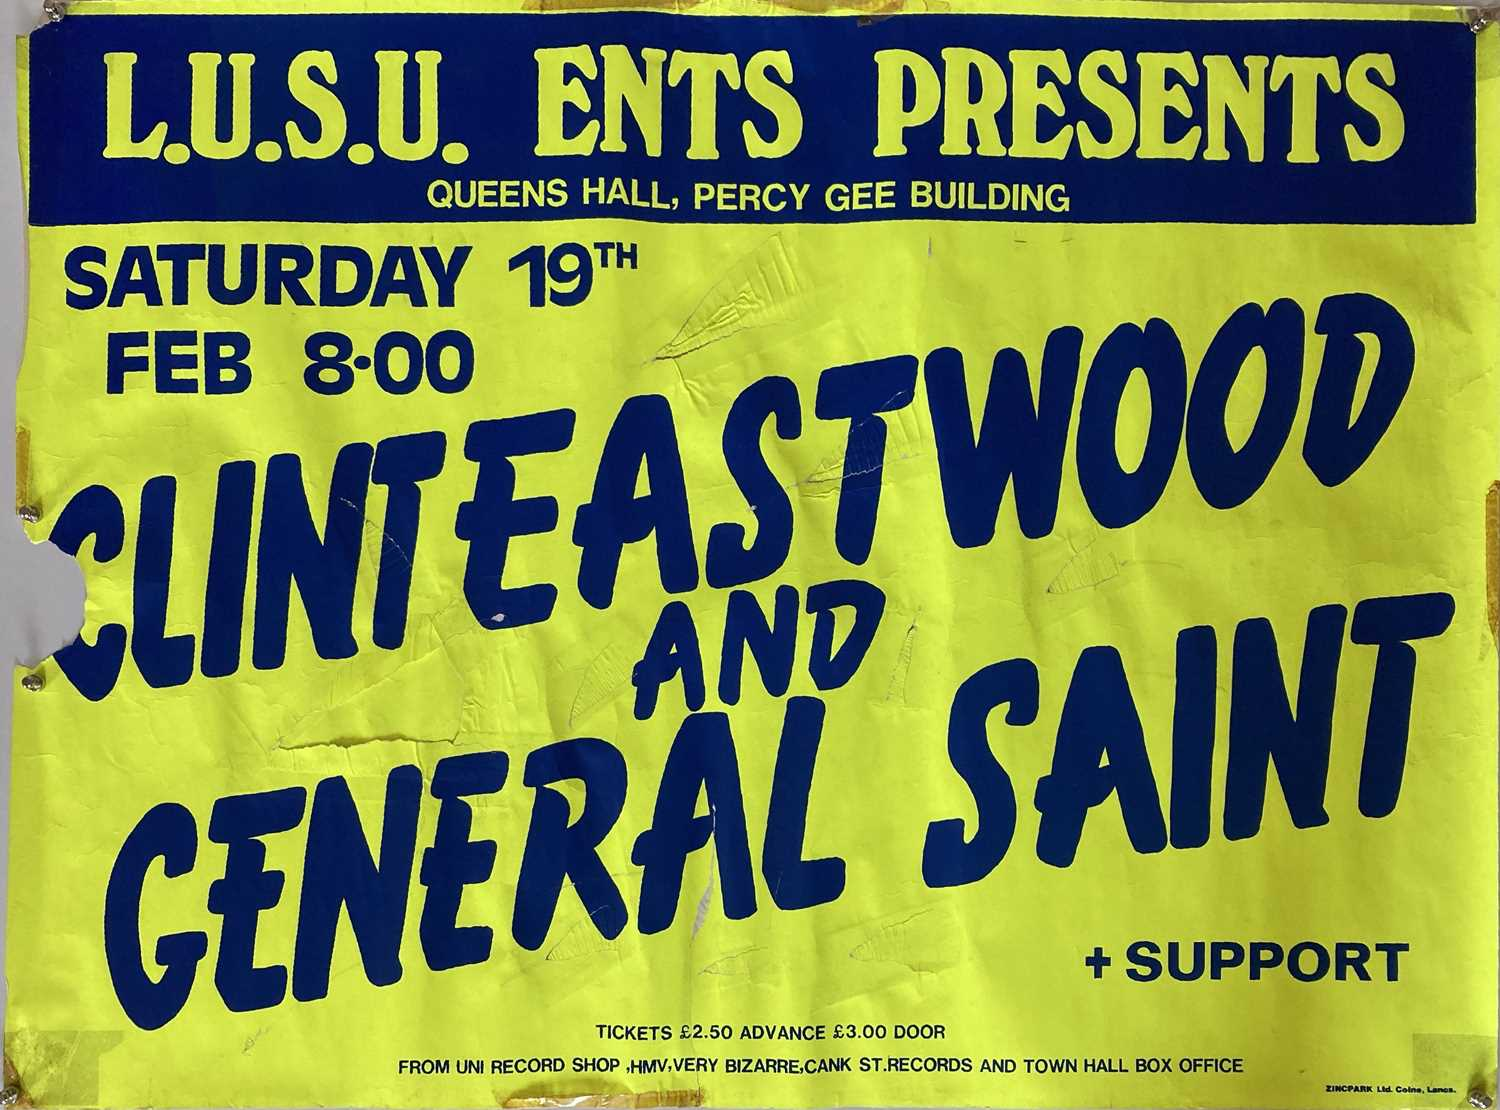 LEICESTER POLY CONCERT POSTERS - CLINT EASTWOOD AND GENERAL SAINT.